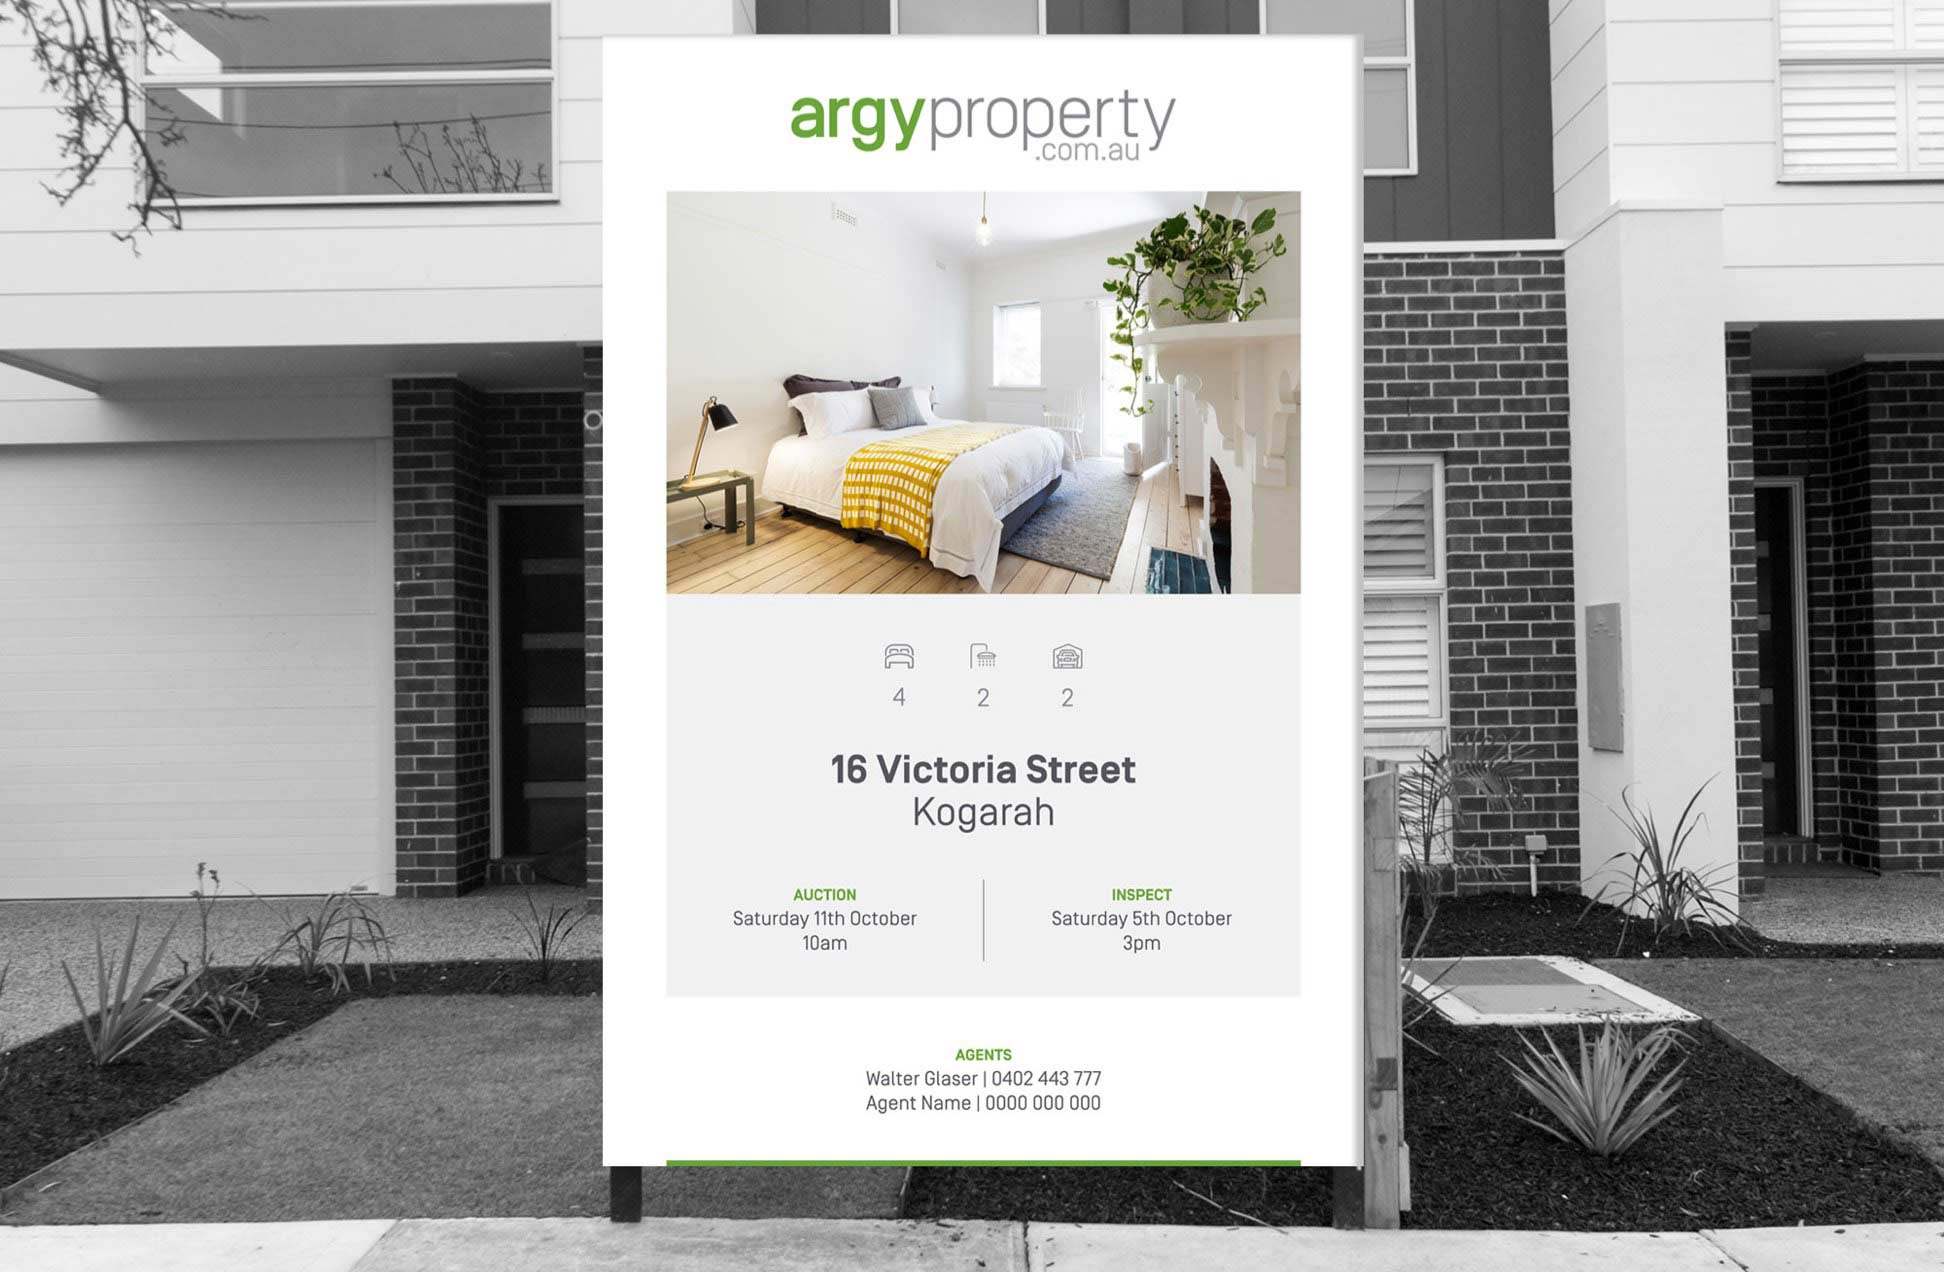 Argy Property billboard